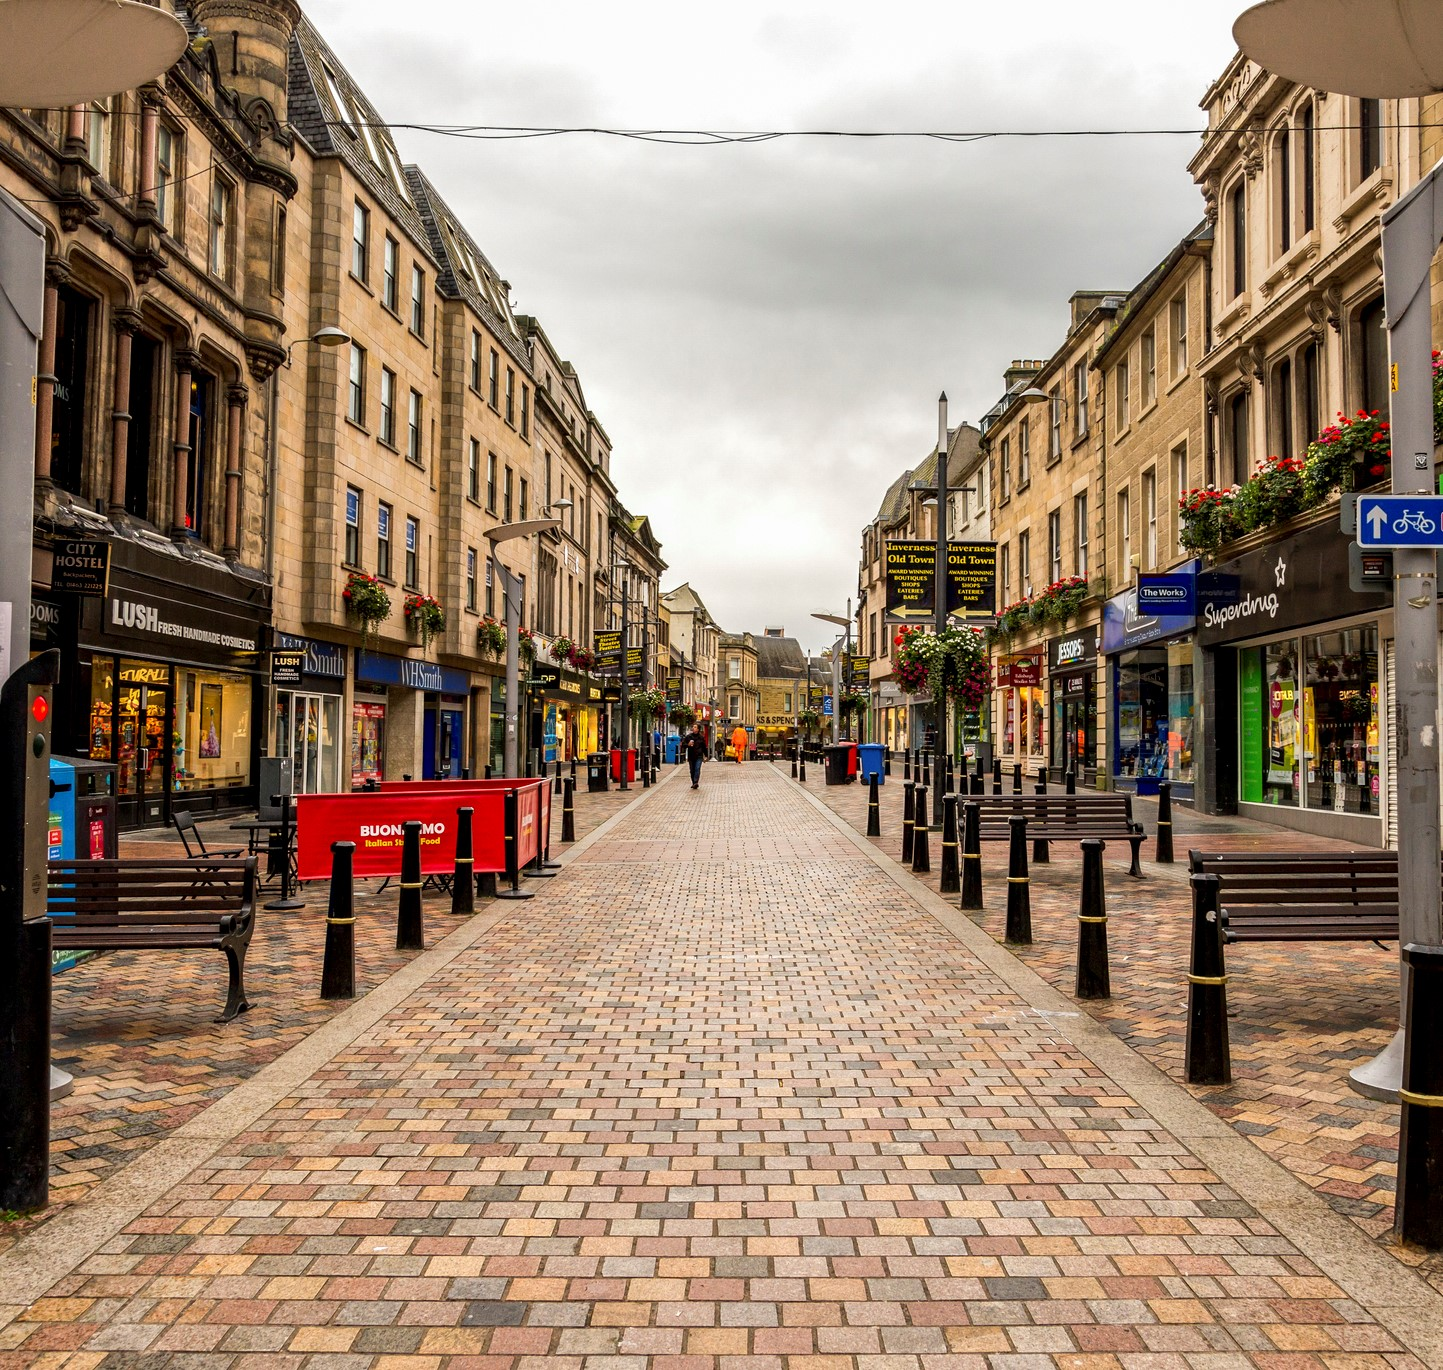 High Street in Scotland.